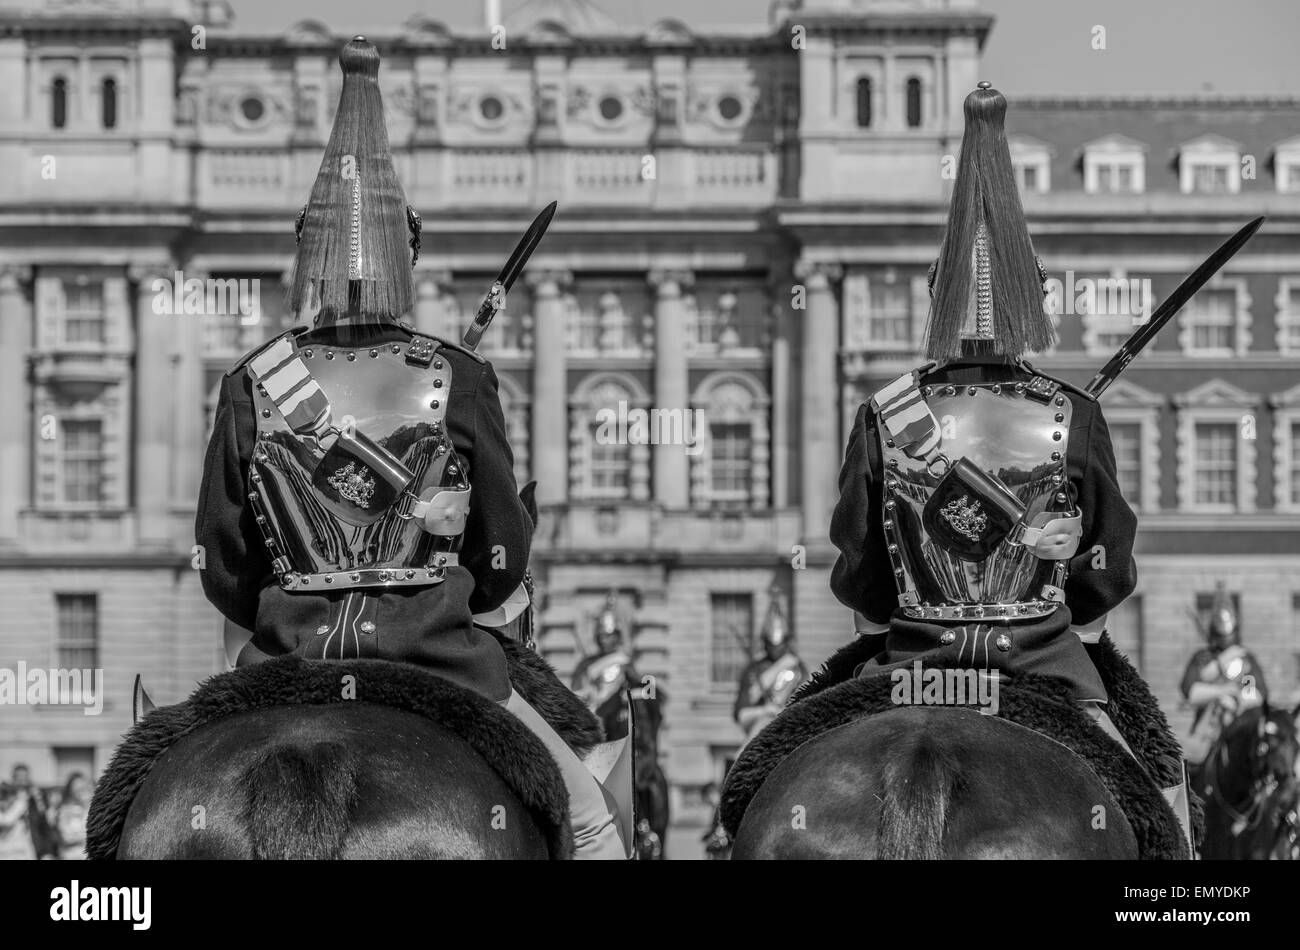 A sepia tone portrait of The Blues and Royals Household Cavalry Horse Guards Parade London England UK - Stock Image